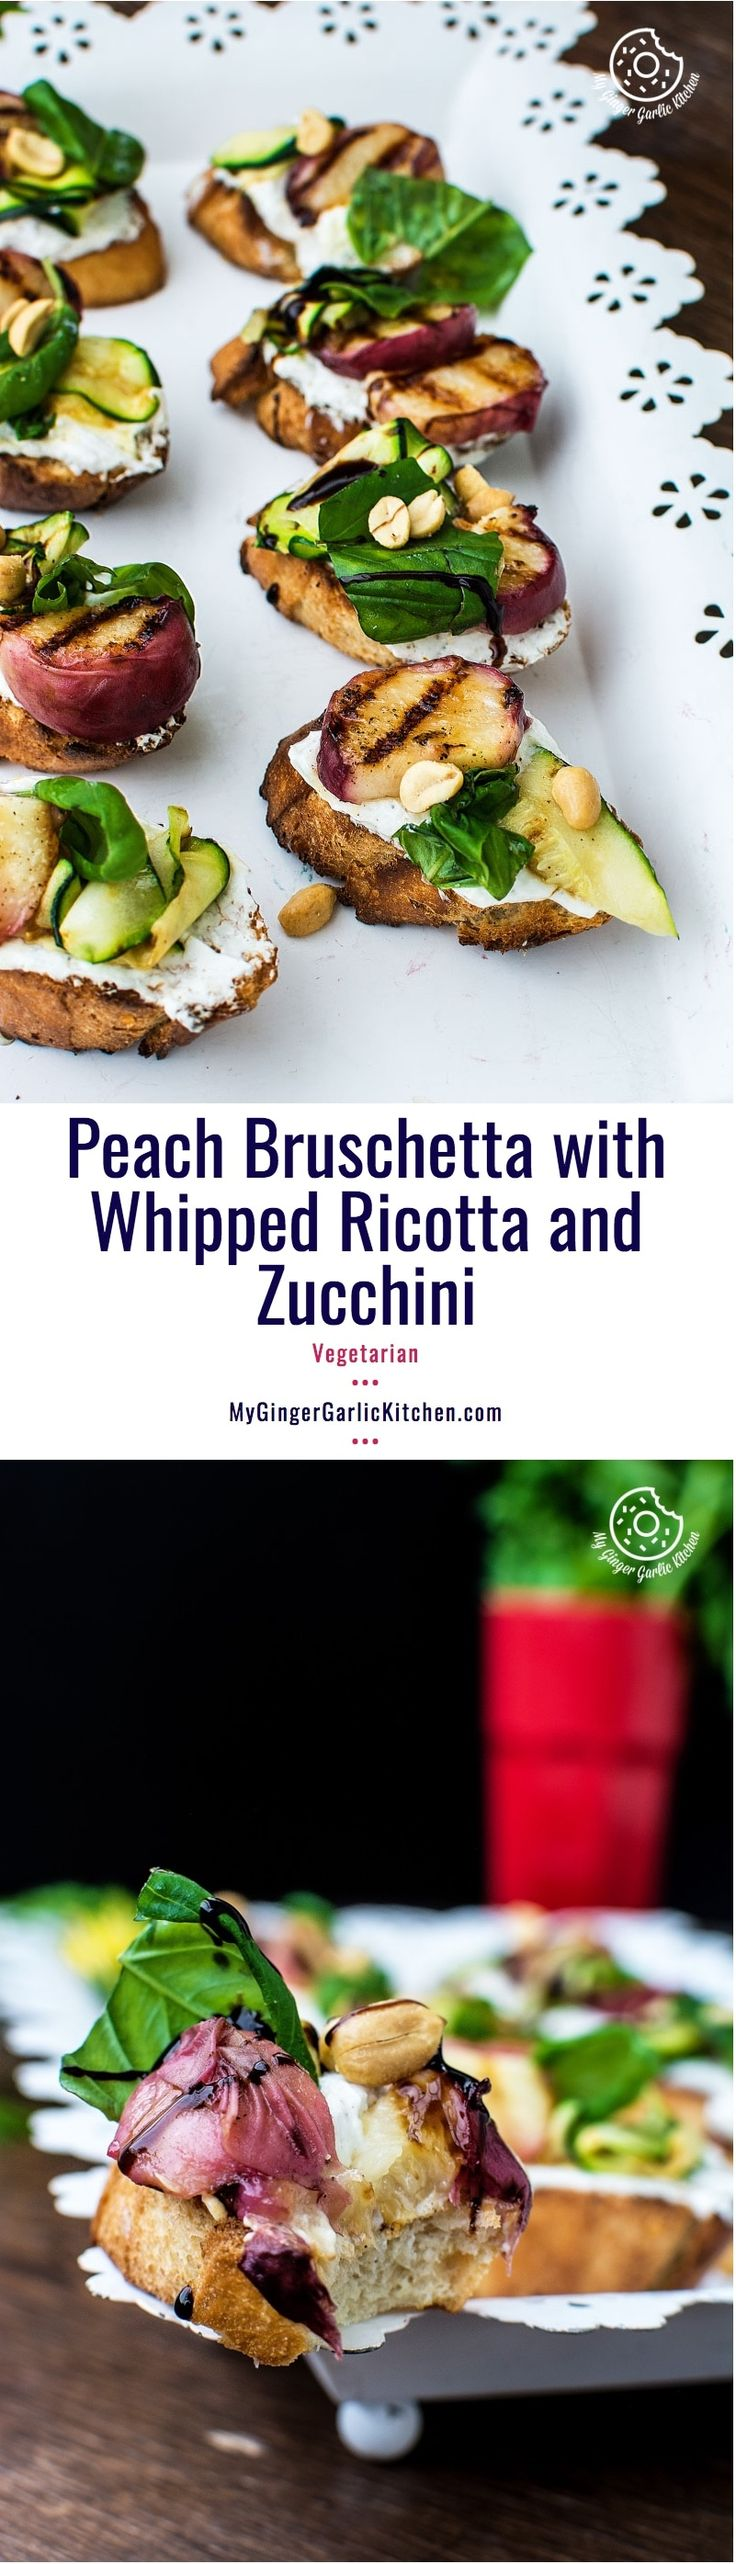 Peach Bruschetta with Whipped Ricotta and Zucchini — A classic crunchy bread, perfect sweet salty and peppery grilled peaches, creamy whipped ricotta cheese, grilled zucchini, roasted peanuts and a drizzle of honey or balsamic glaze and the touch of basil in every single bite.